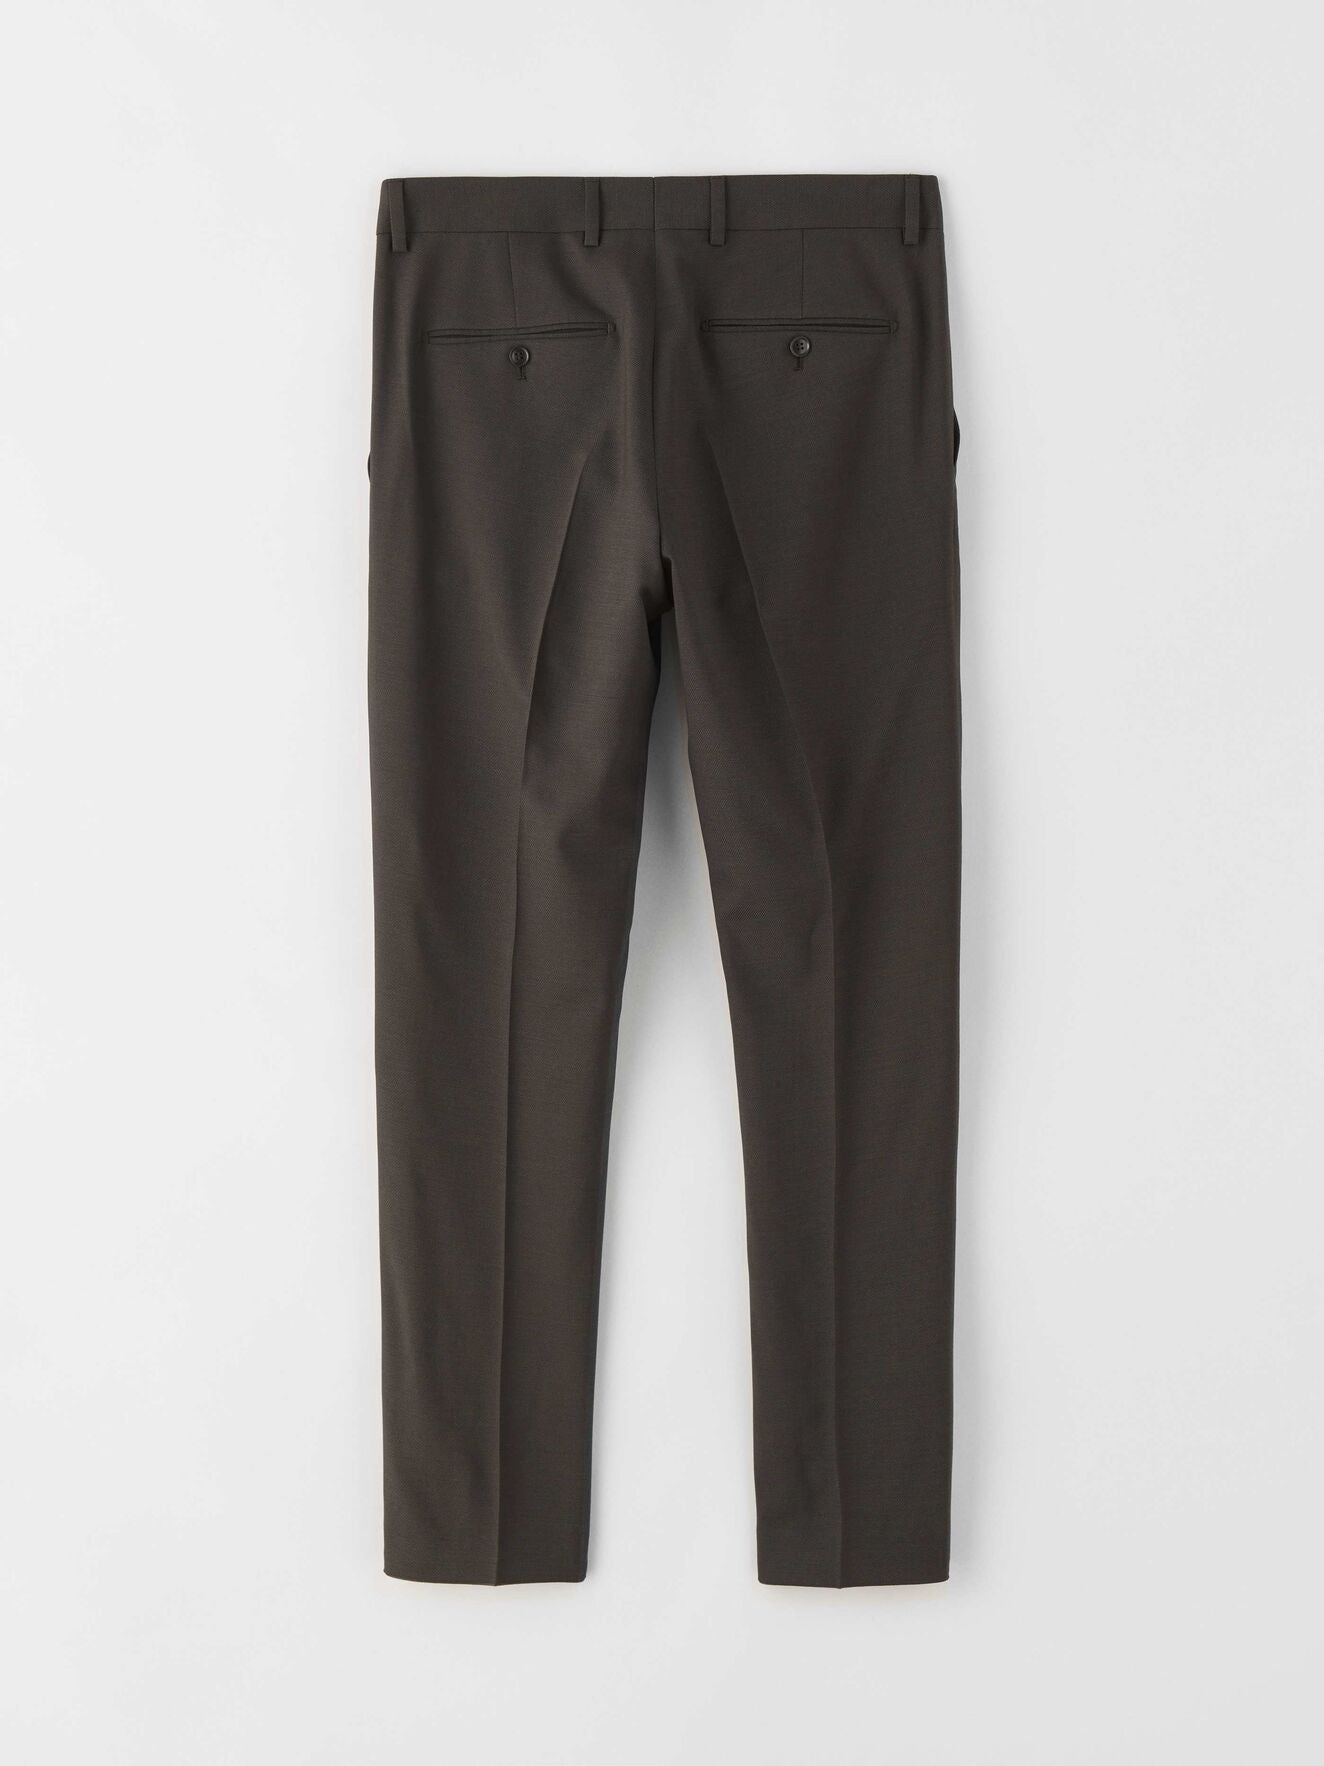 Tiger of Sweden Wool Trousers in Charcoal color